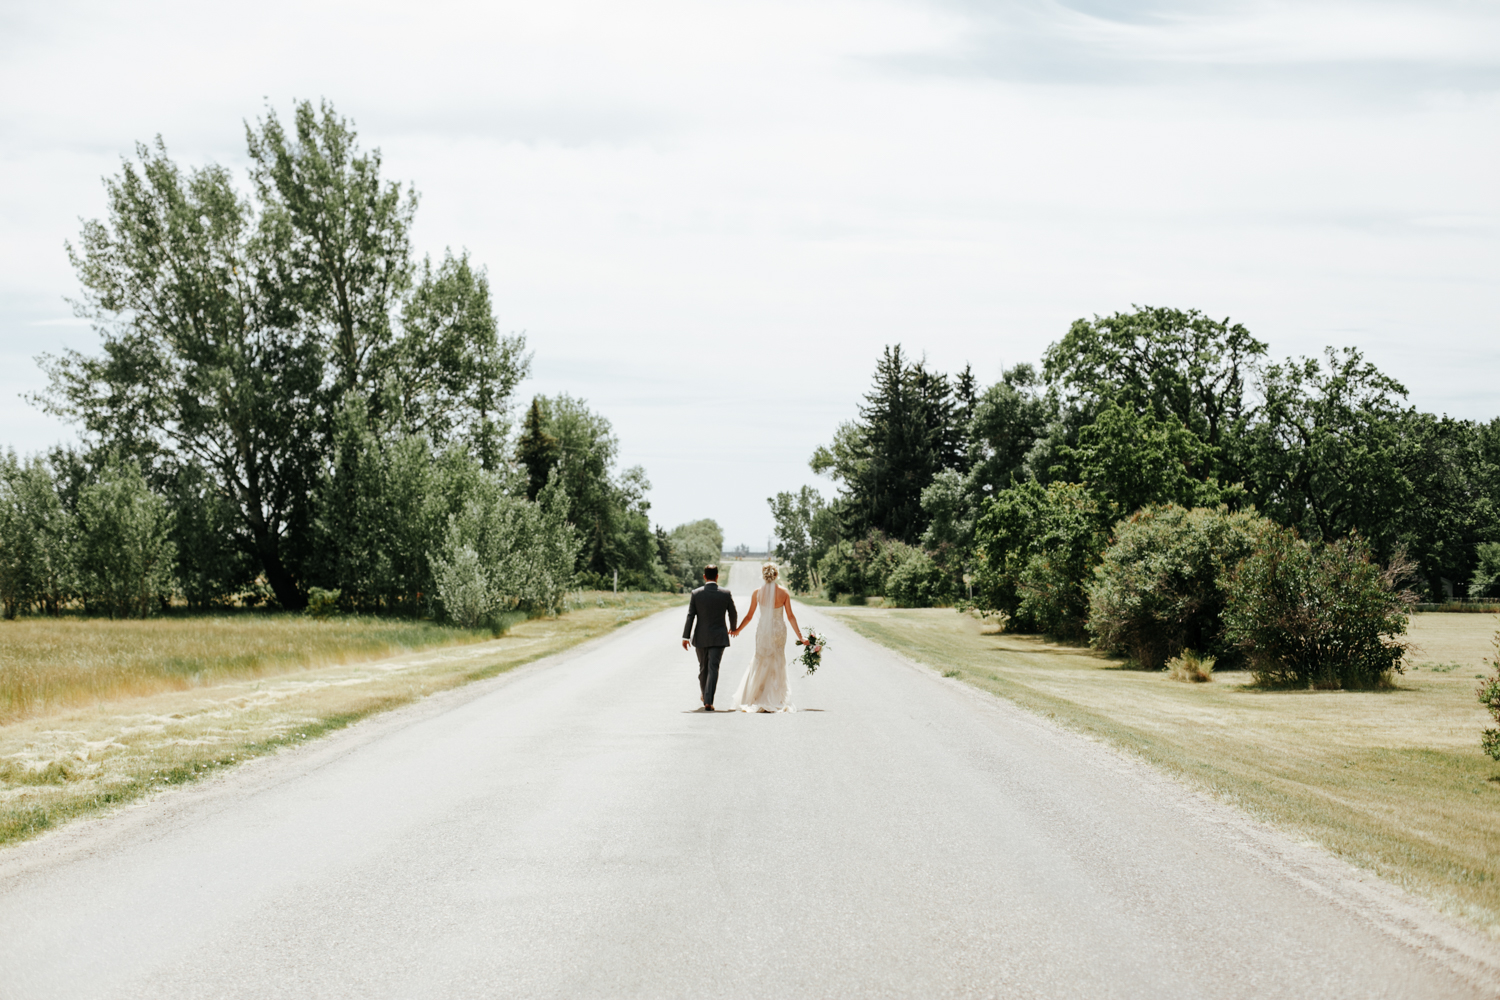 lethbridge-wedding-photographer-love-and-be-loved-photography-bailey-joel-lethbridge-wedding-picture-image-photo-67.jpg